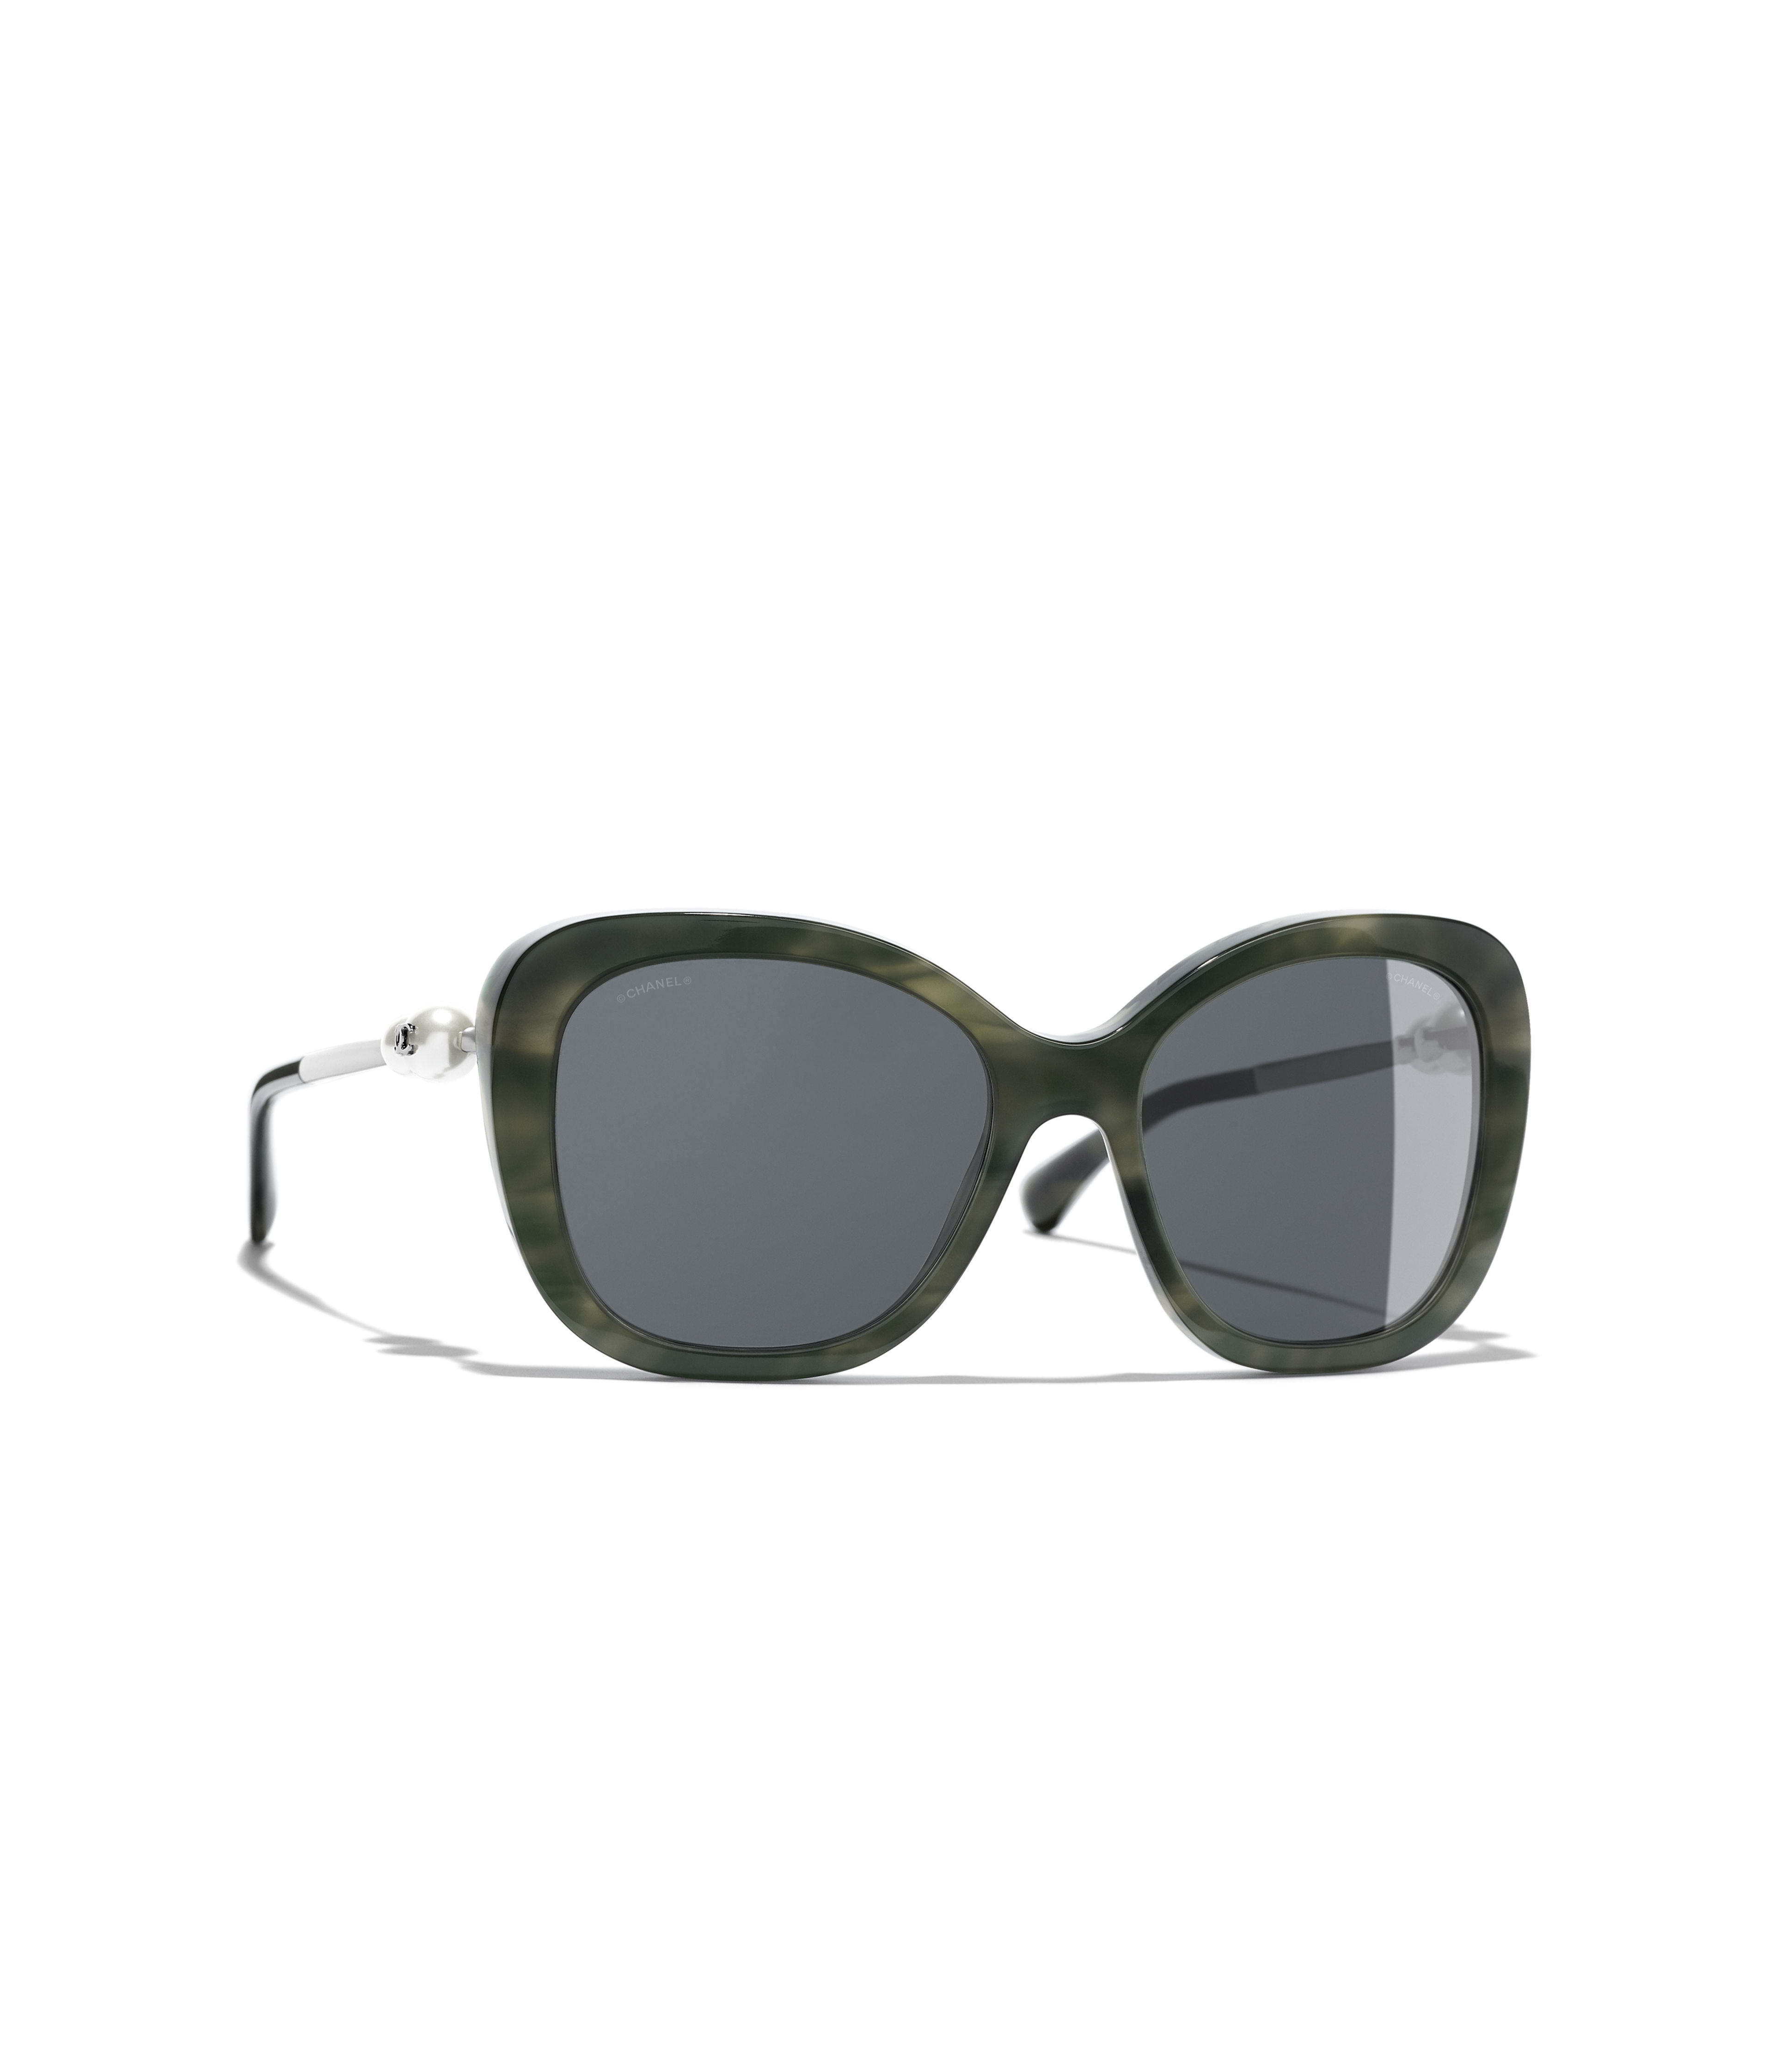 272d2f876241 Black Butterfly Sunglasses A71257S0116OCCI Source · Sunglasses Eyewear  CHANEL page 2 3